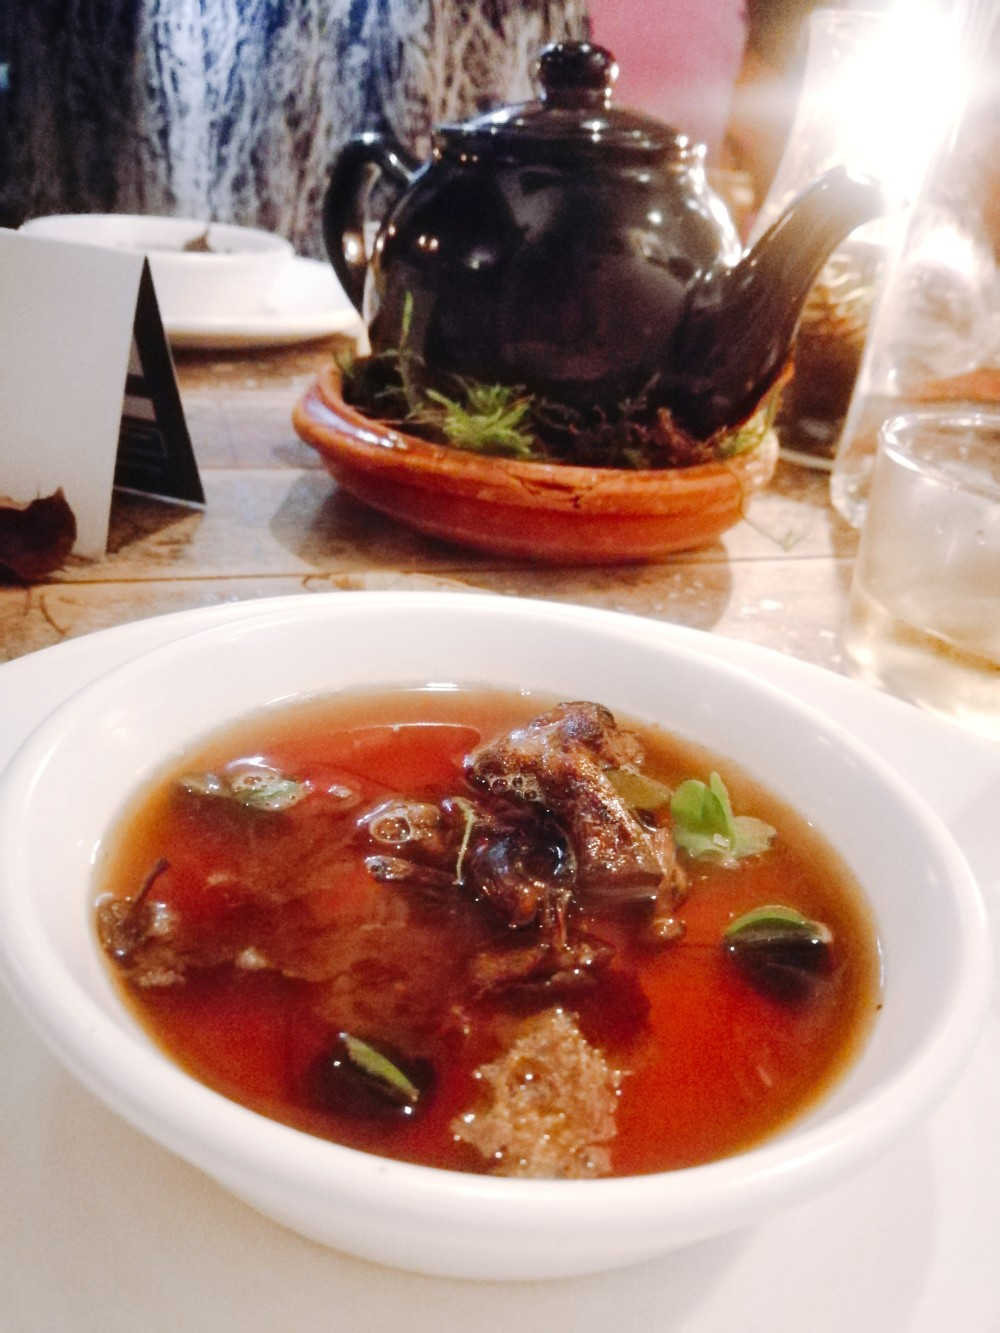 A Forest Consomme with teapot in the background